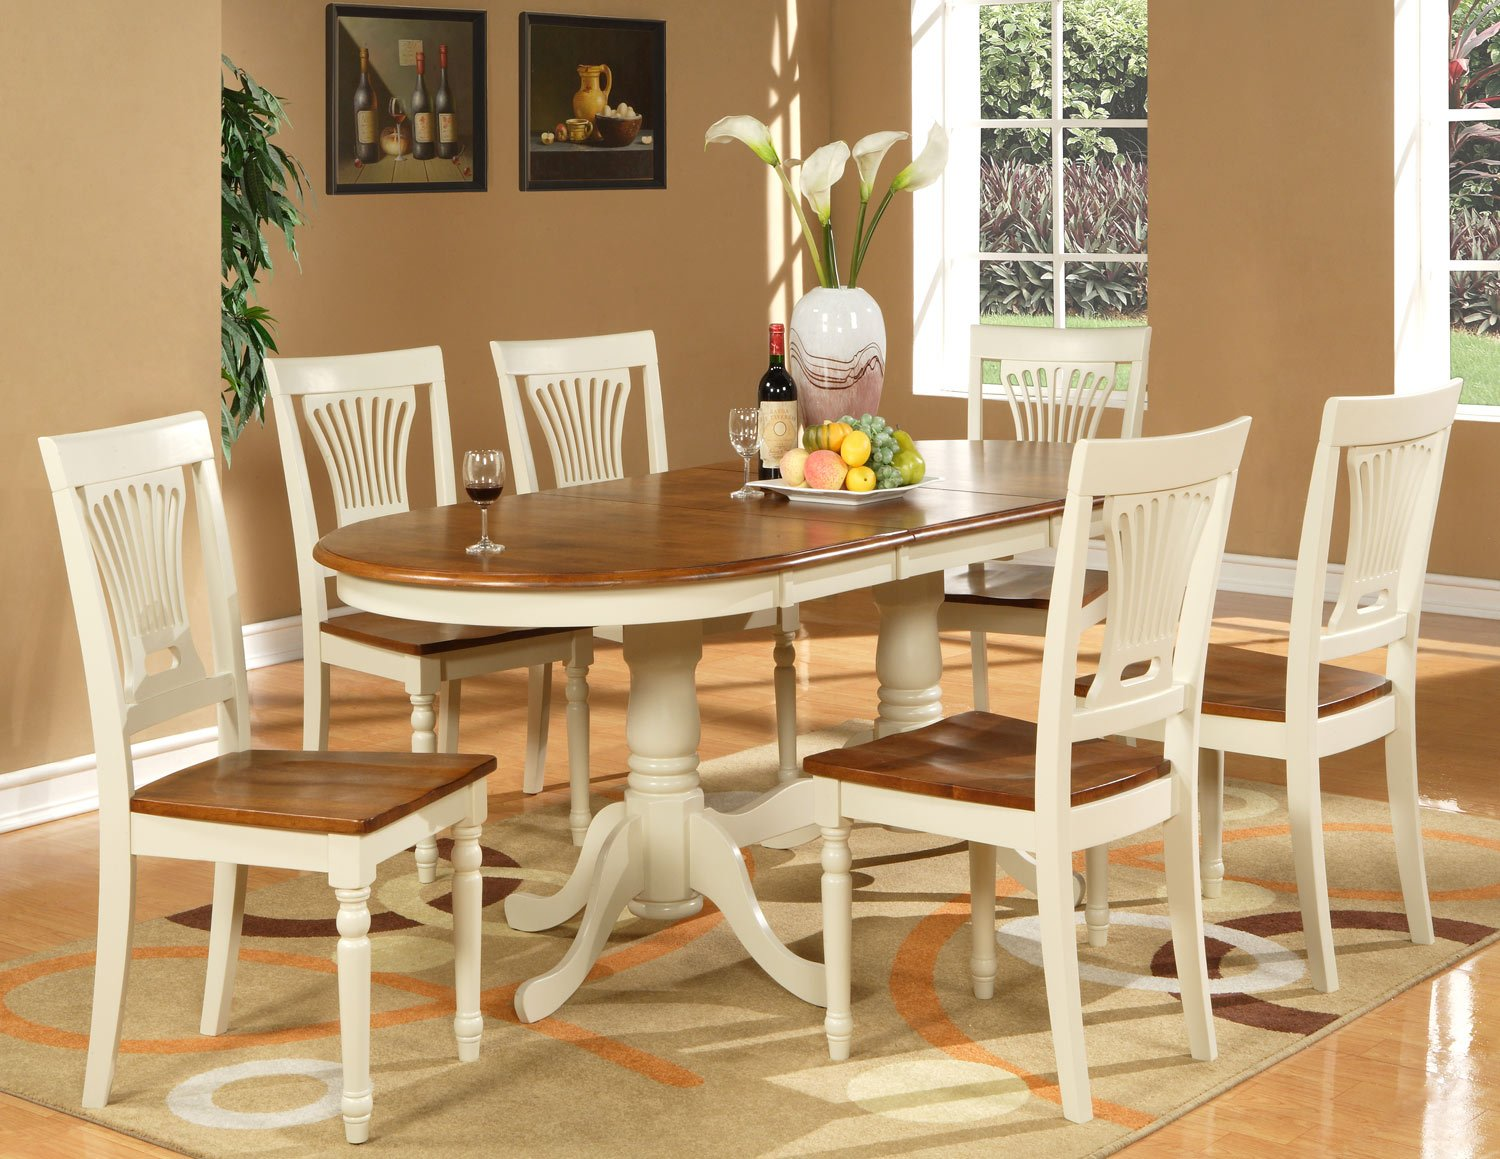 """5-PC Plainfield Oval Dining Room Table Set + 4 Chairs - Size: 42""""x78"""" in Butter milk. SKU: PL5-WHI"""